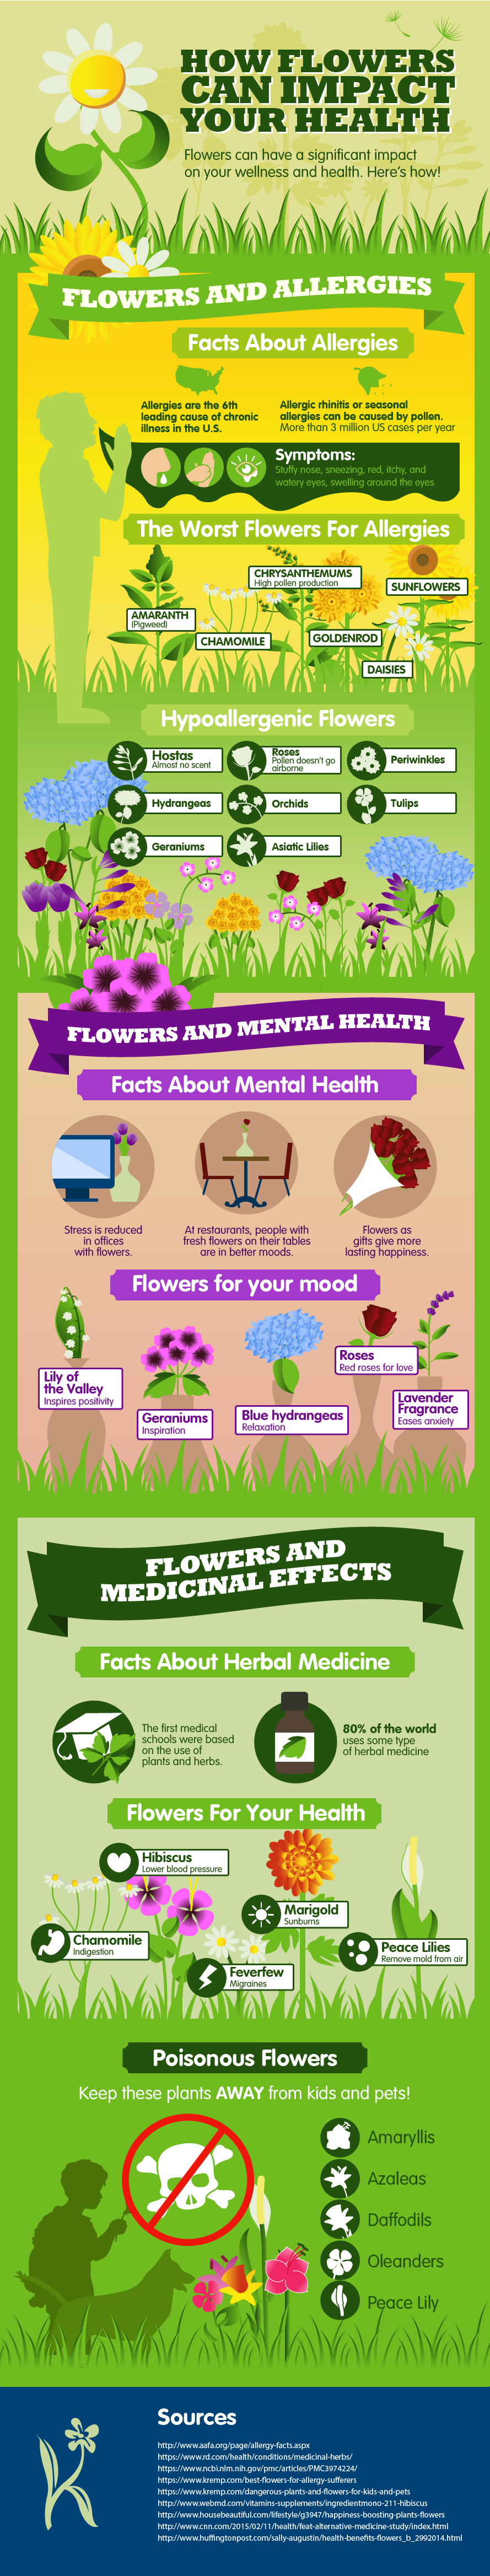 Infographic: How Flowers can Impact your Health